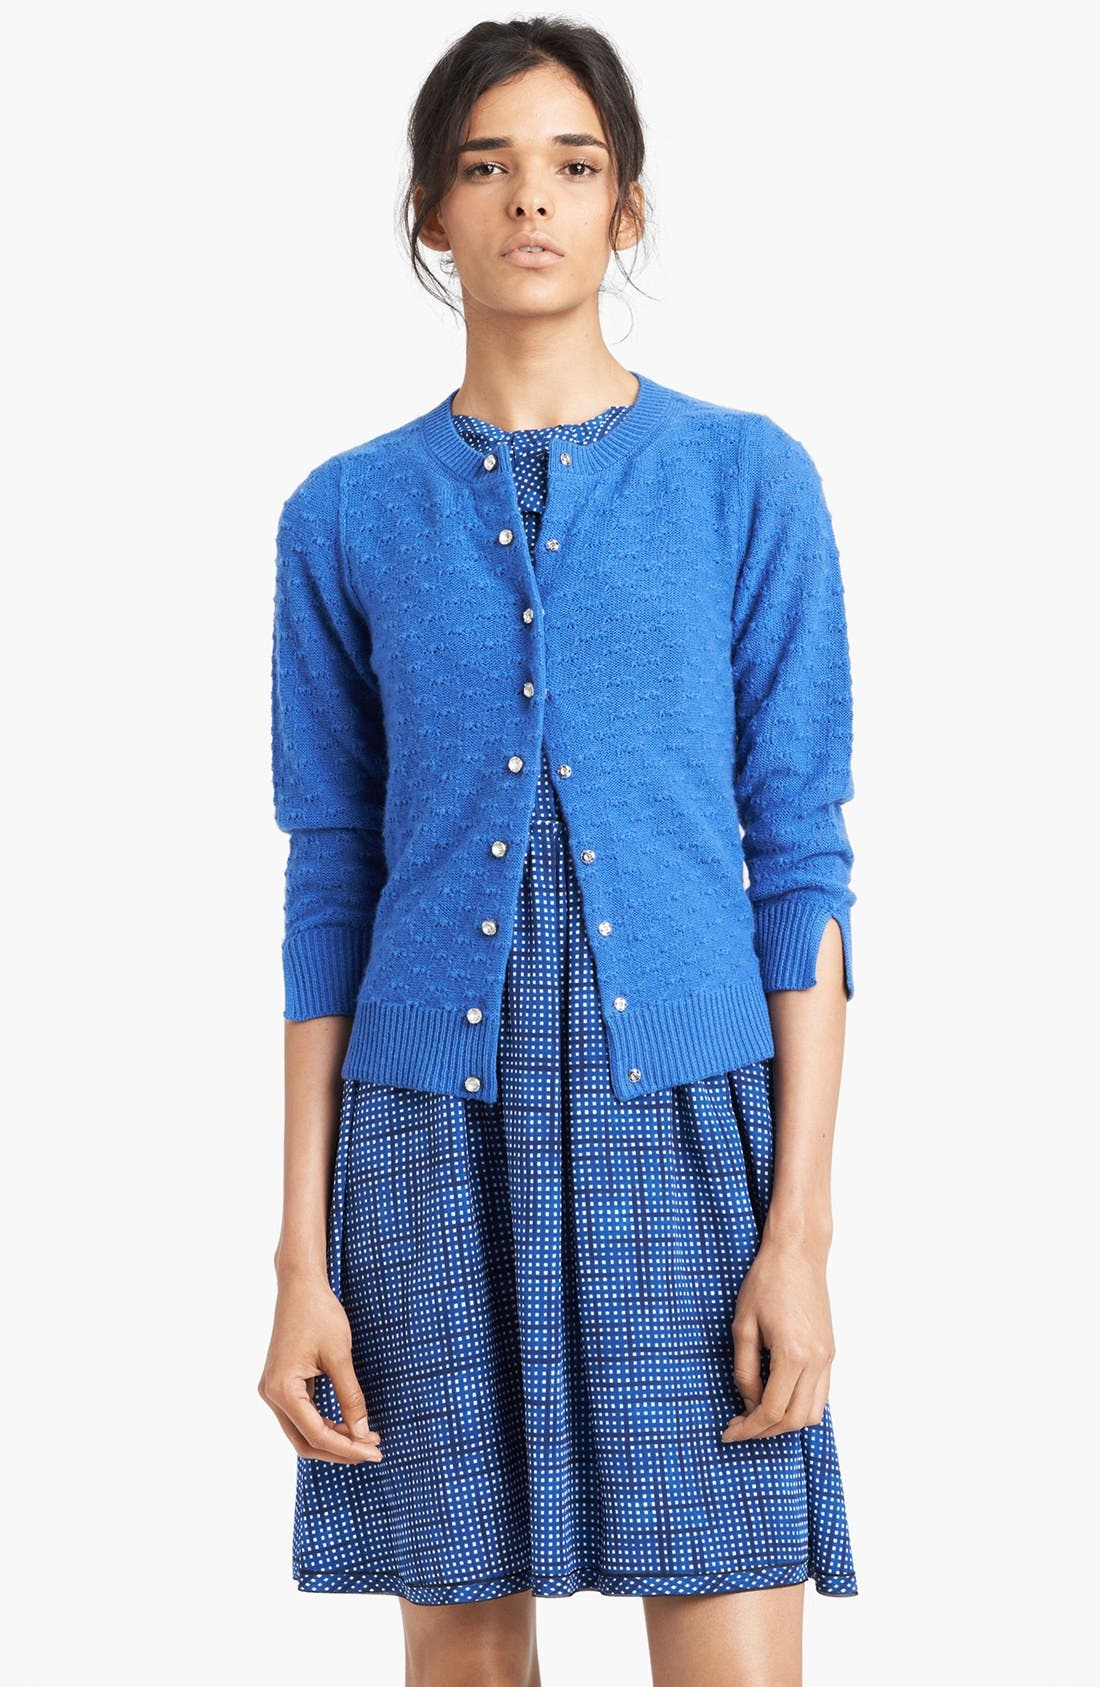 Alternate Image 1 Selected - MARC JACOBS Jewel Button Cashmere Cardigan